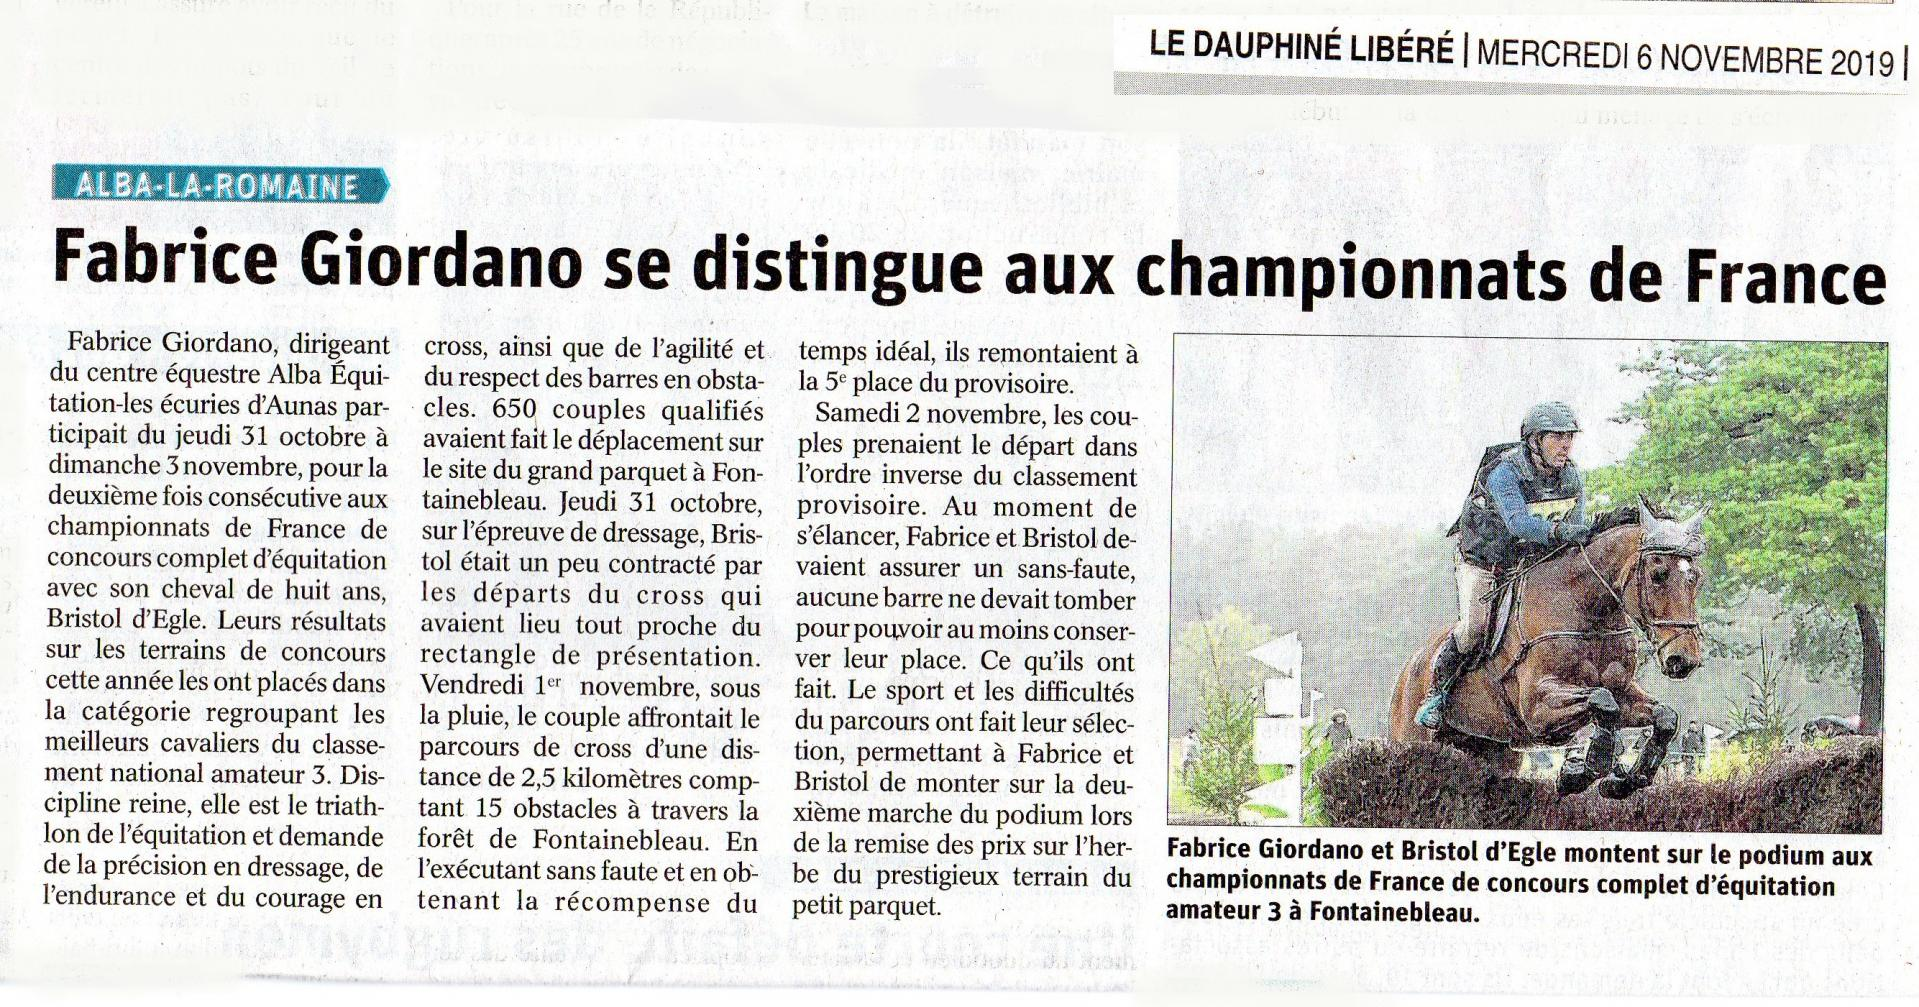 Article dl championnats de france 2019